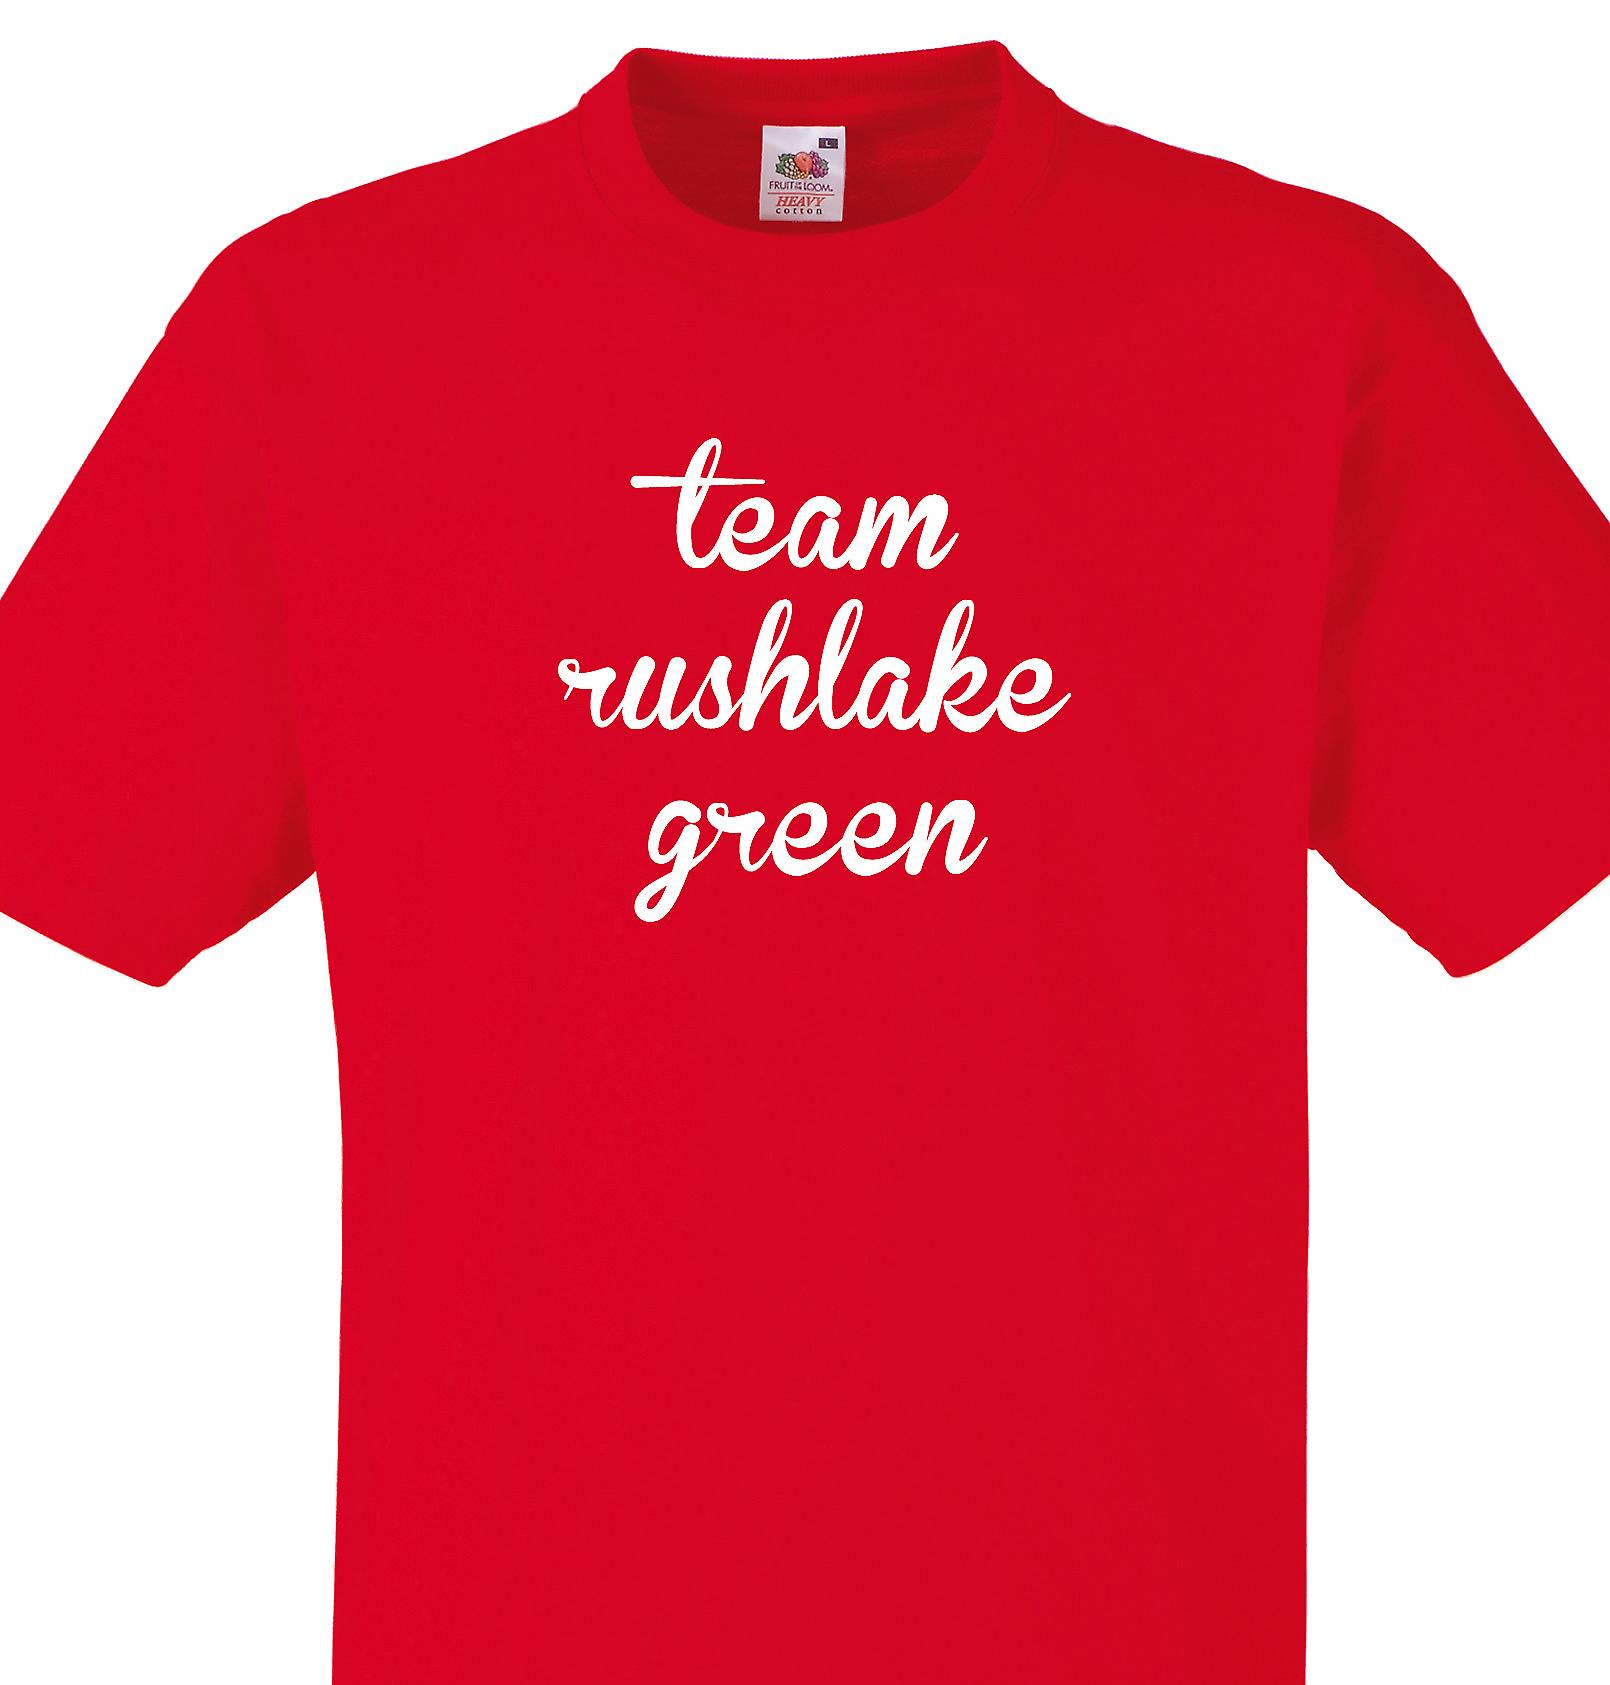 Team Rushlake green Red T shirt